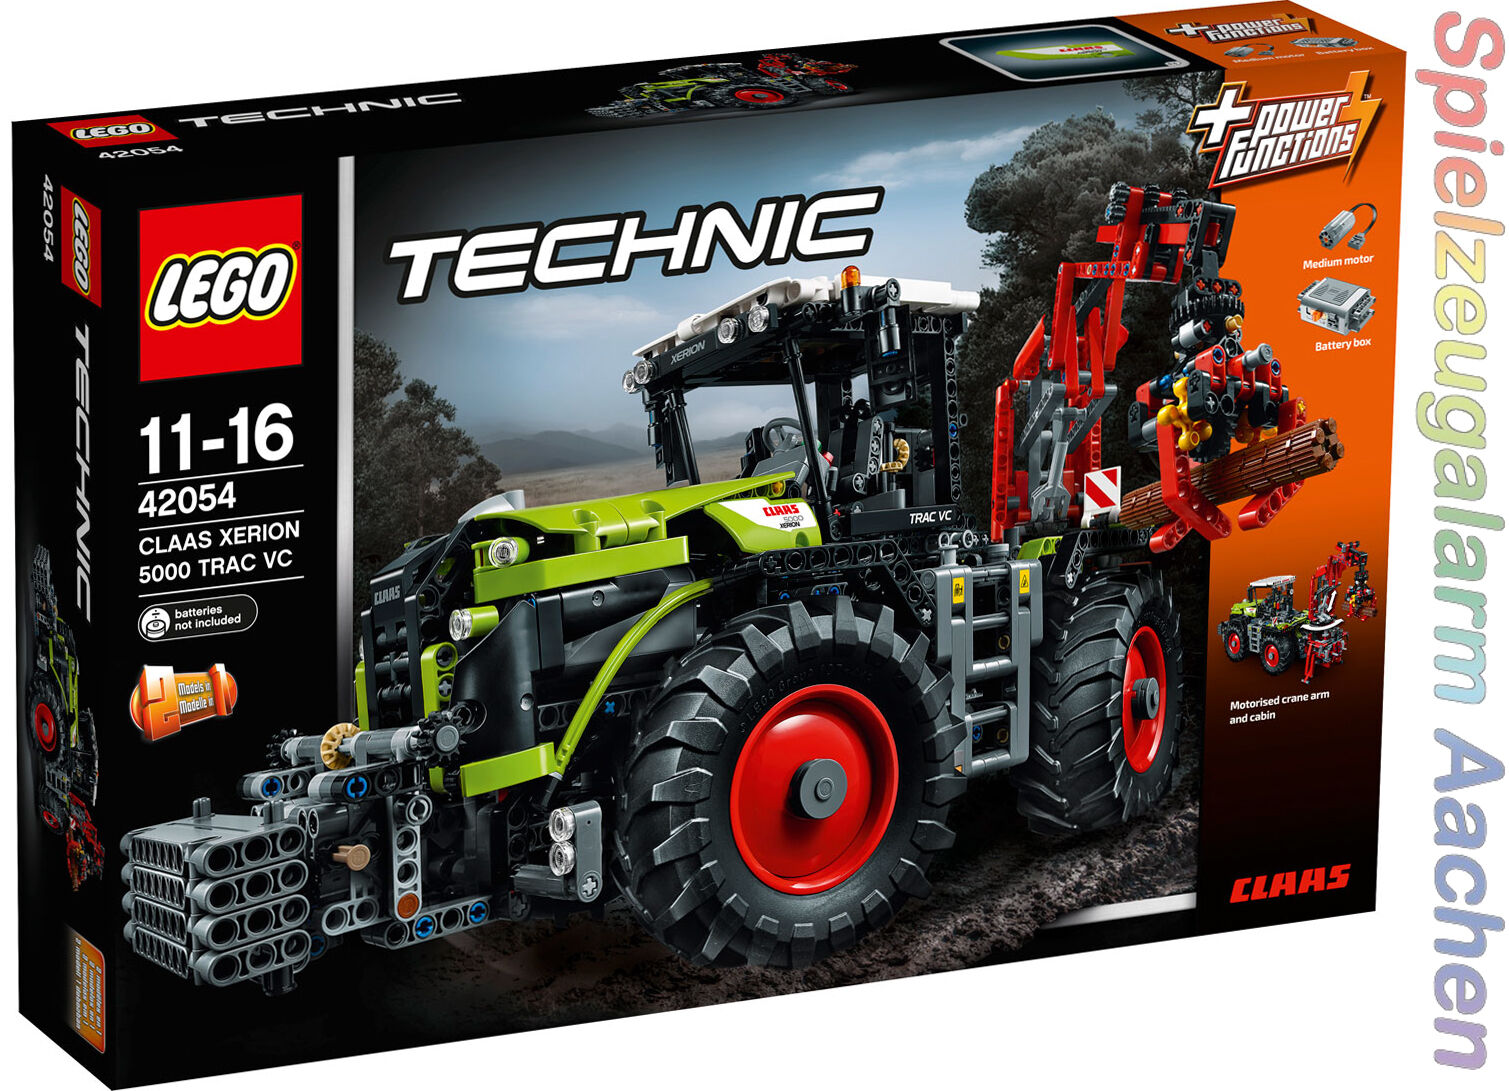 Lego 42054 Technic Claas tractor xerion 5000 Trac VC n168